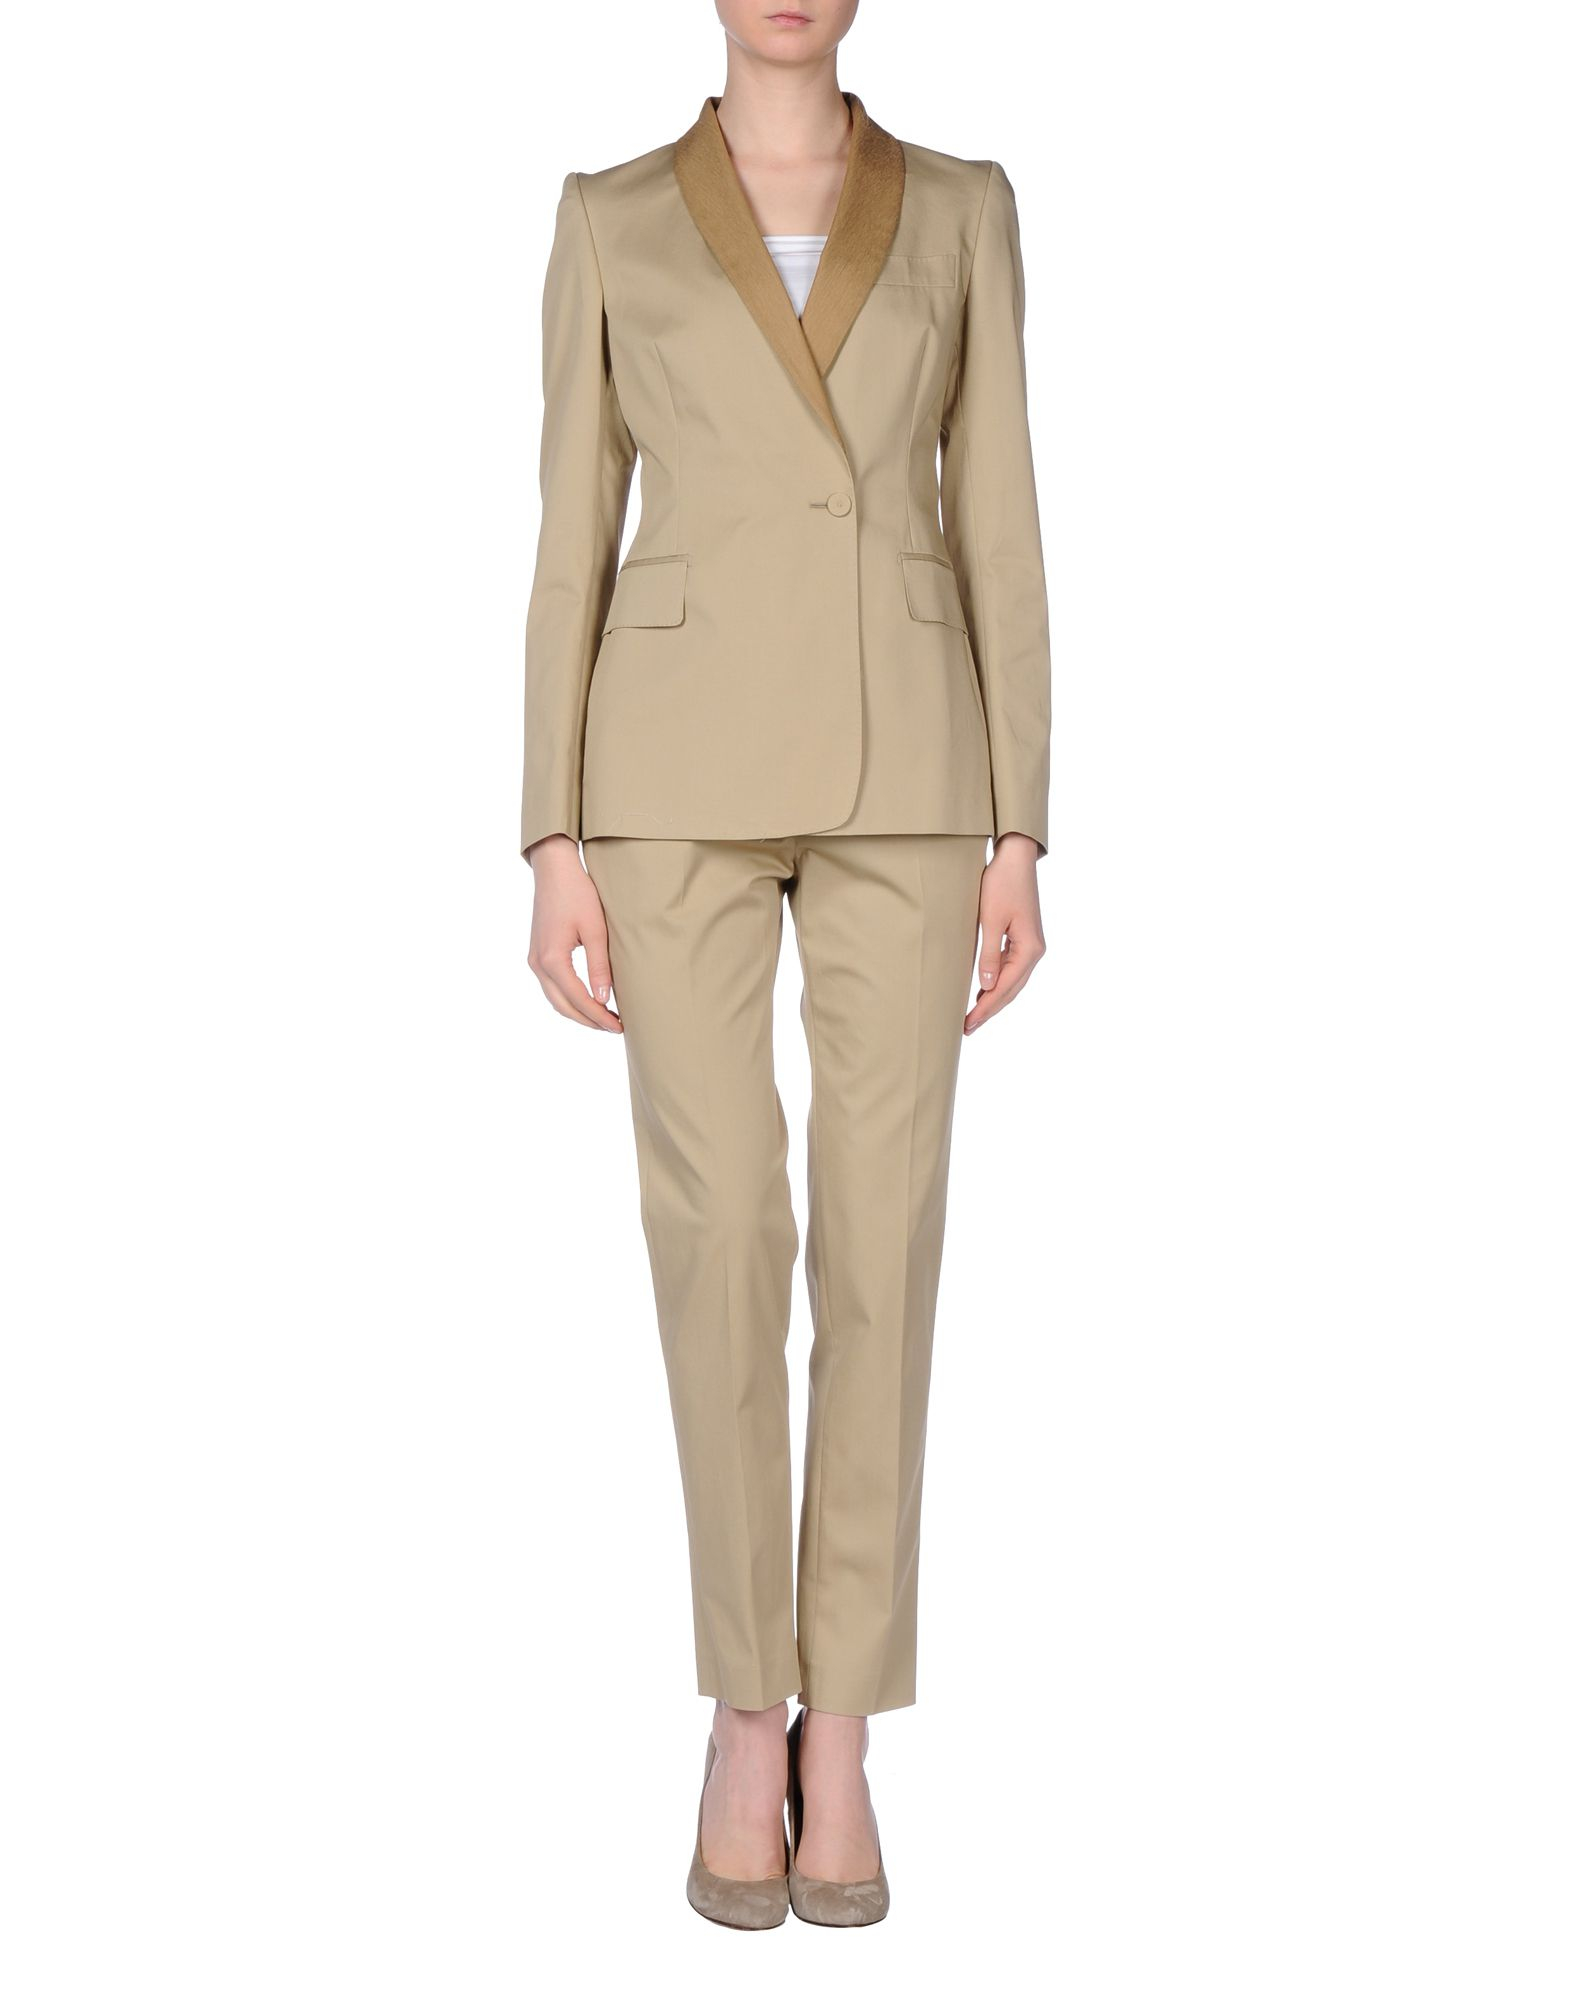 Sears offers a chic collection of women's suits that are classy and stylish. Find a women's pant suit that blends functionality and versatility.